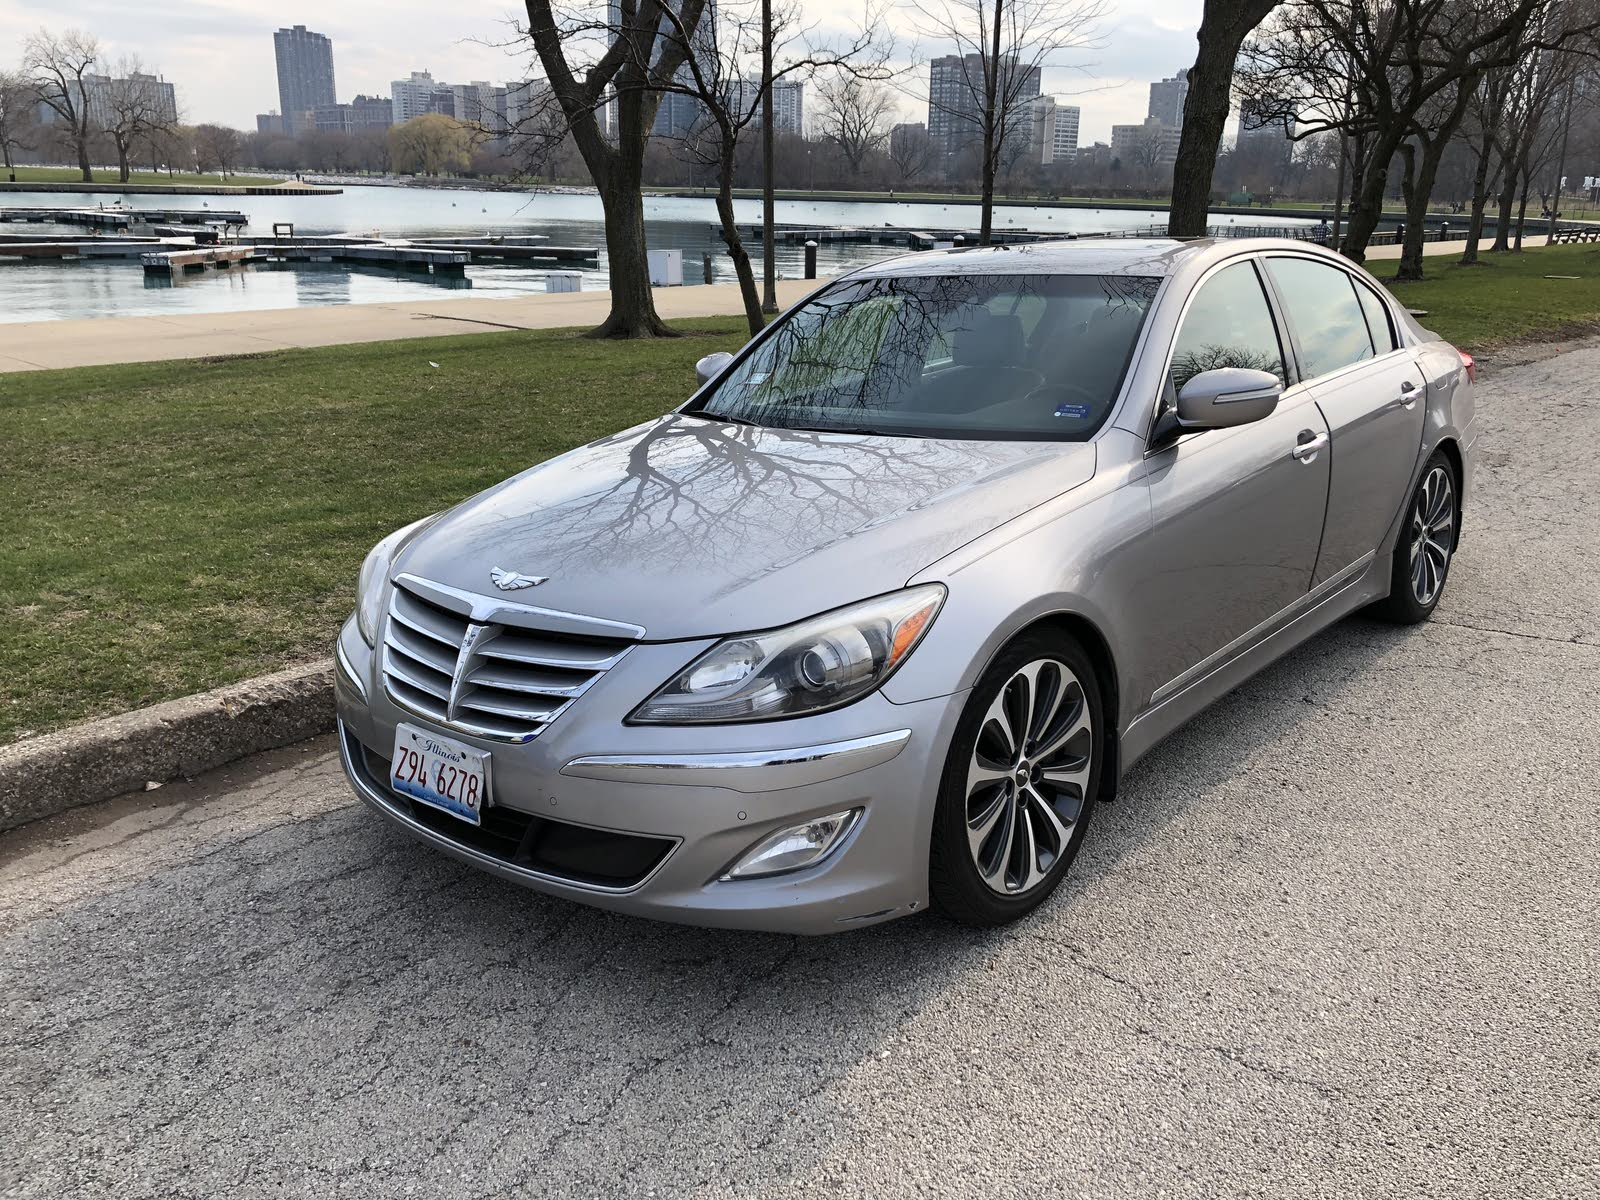 2012 hyundai genesis sedan 3.8 owners manual